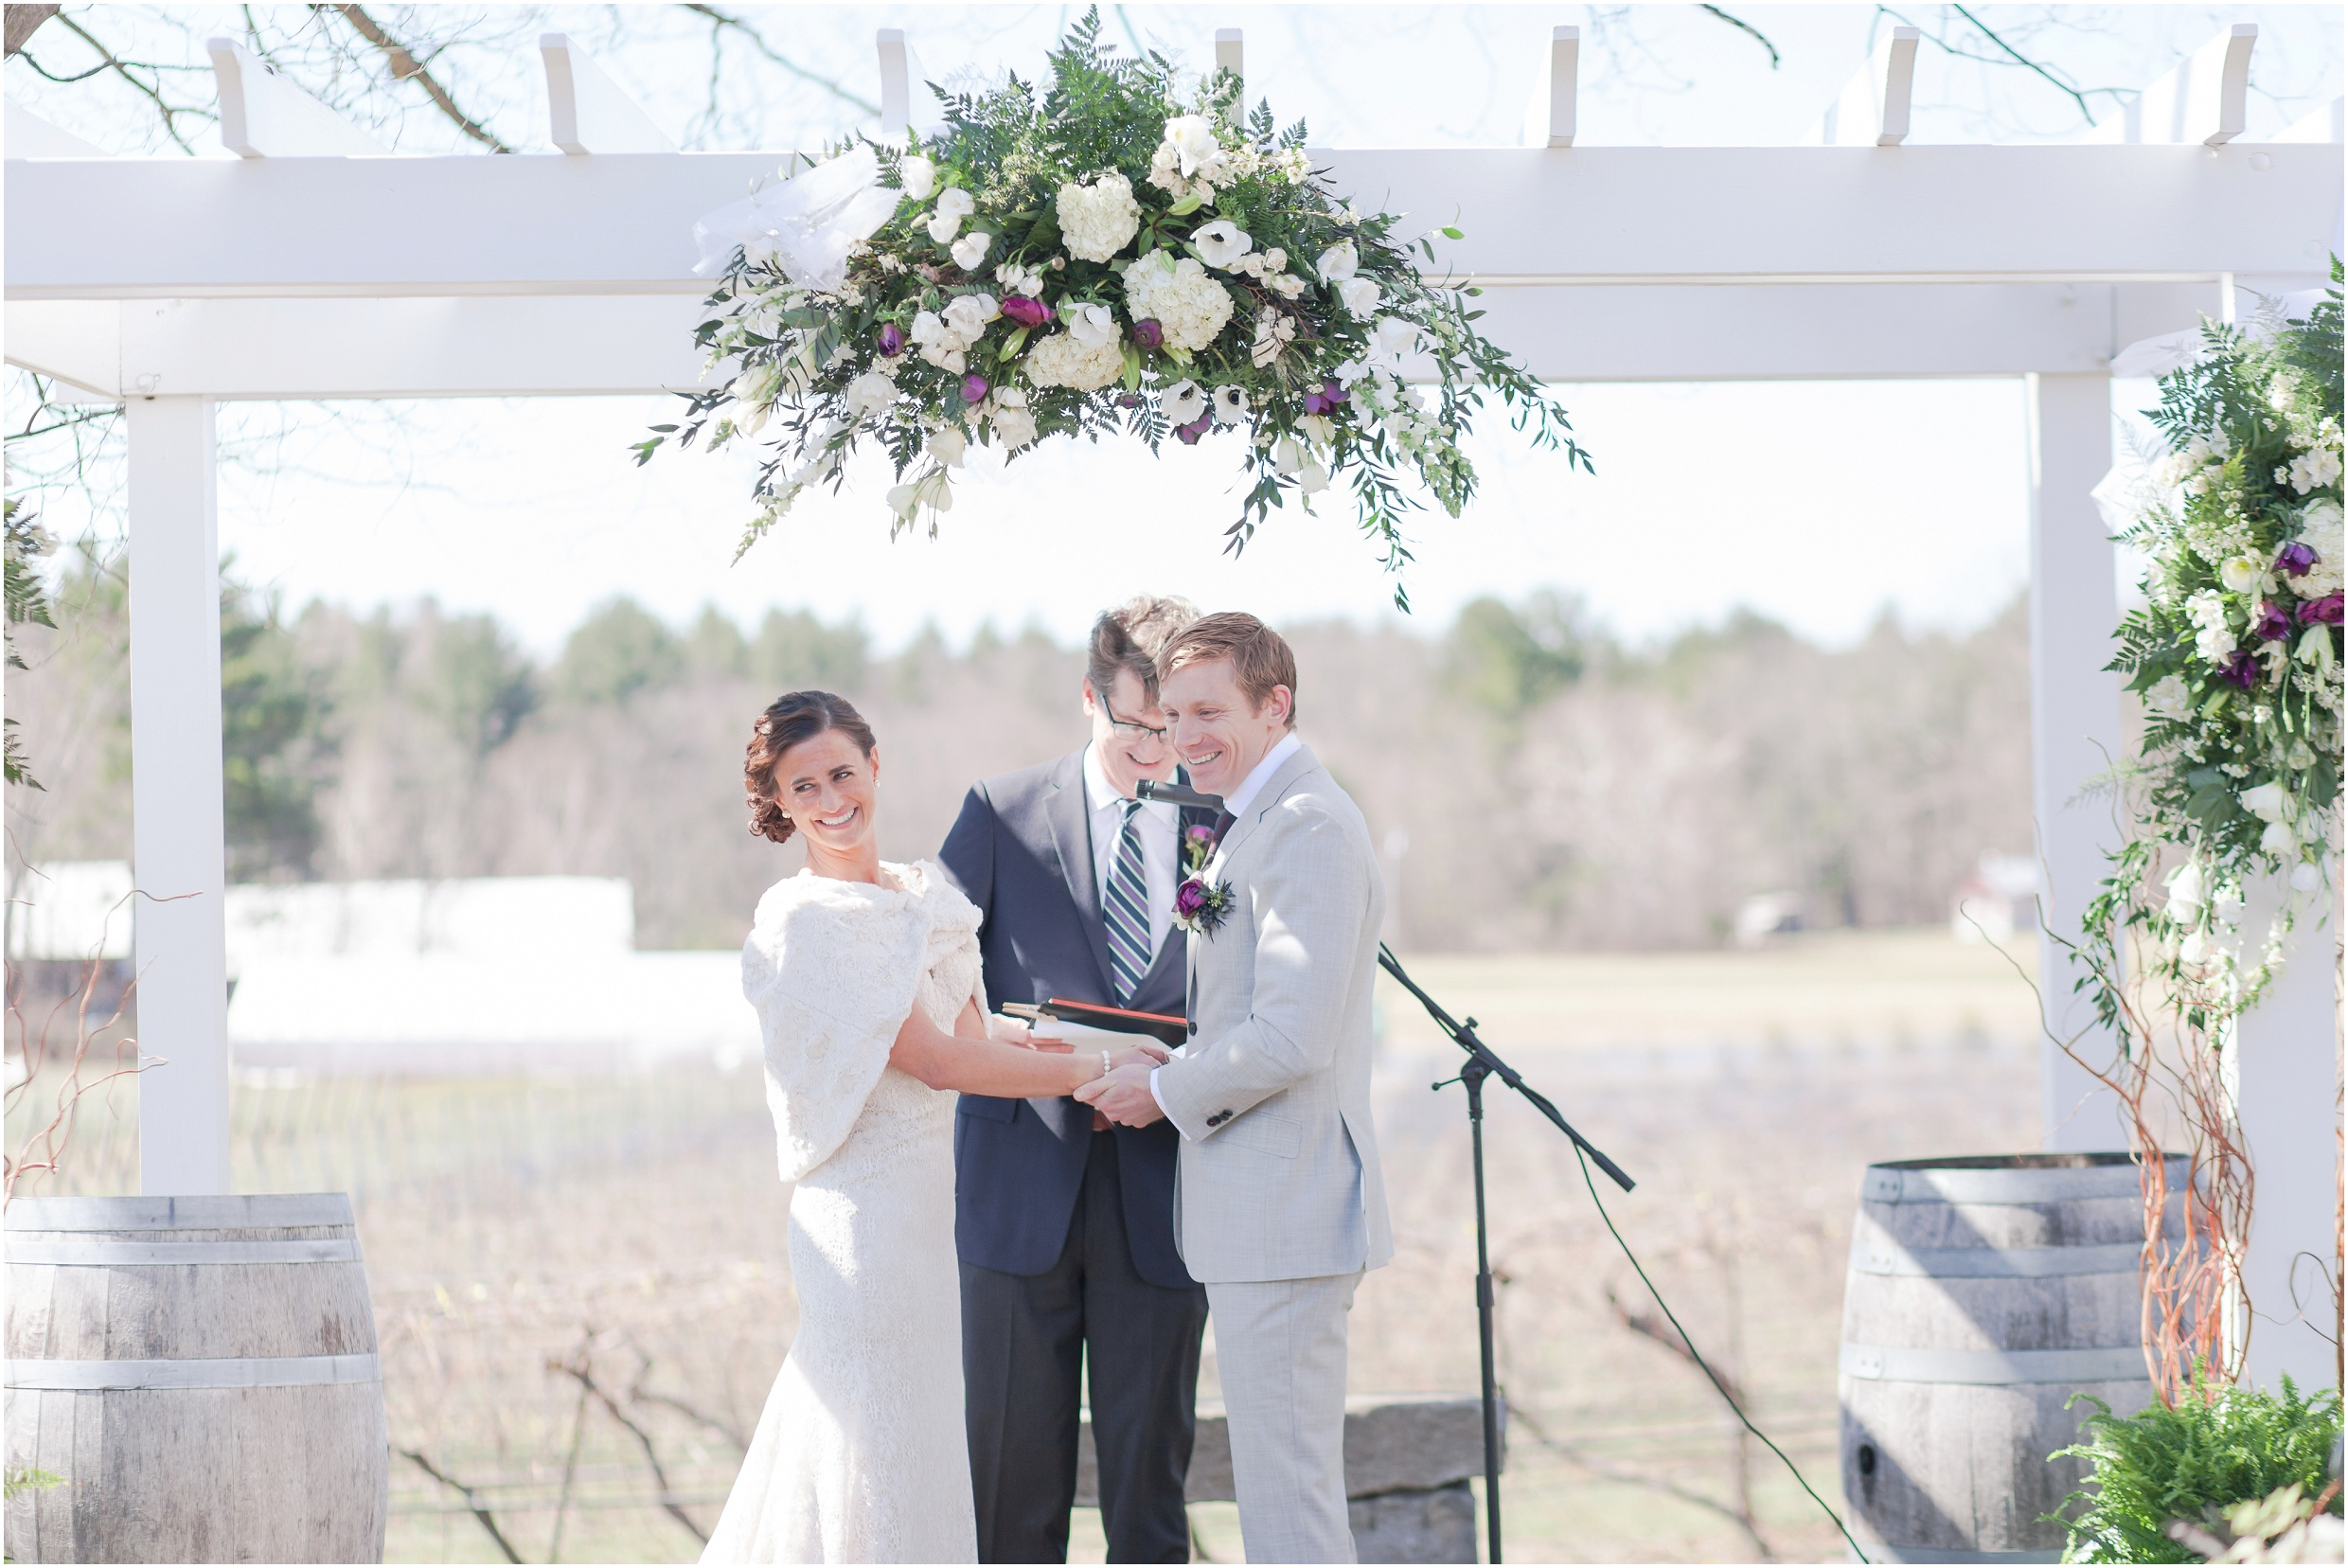 Southern New Hampshire Wedding Photographer  | Surprise Wedding At Flag Hill Winery Lee, New Hampshire Spring Wedding | Amy Brown Photography